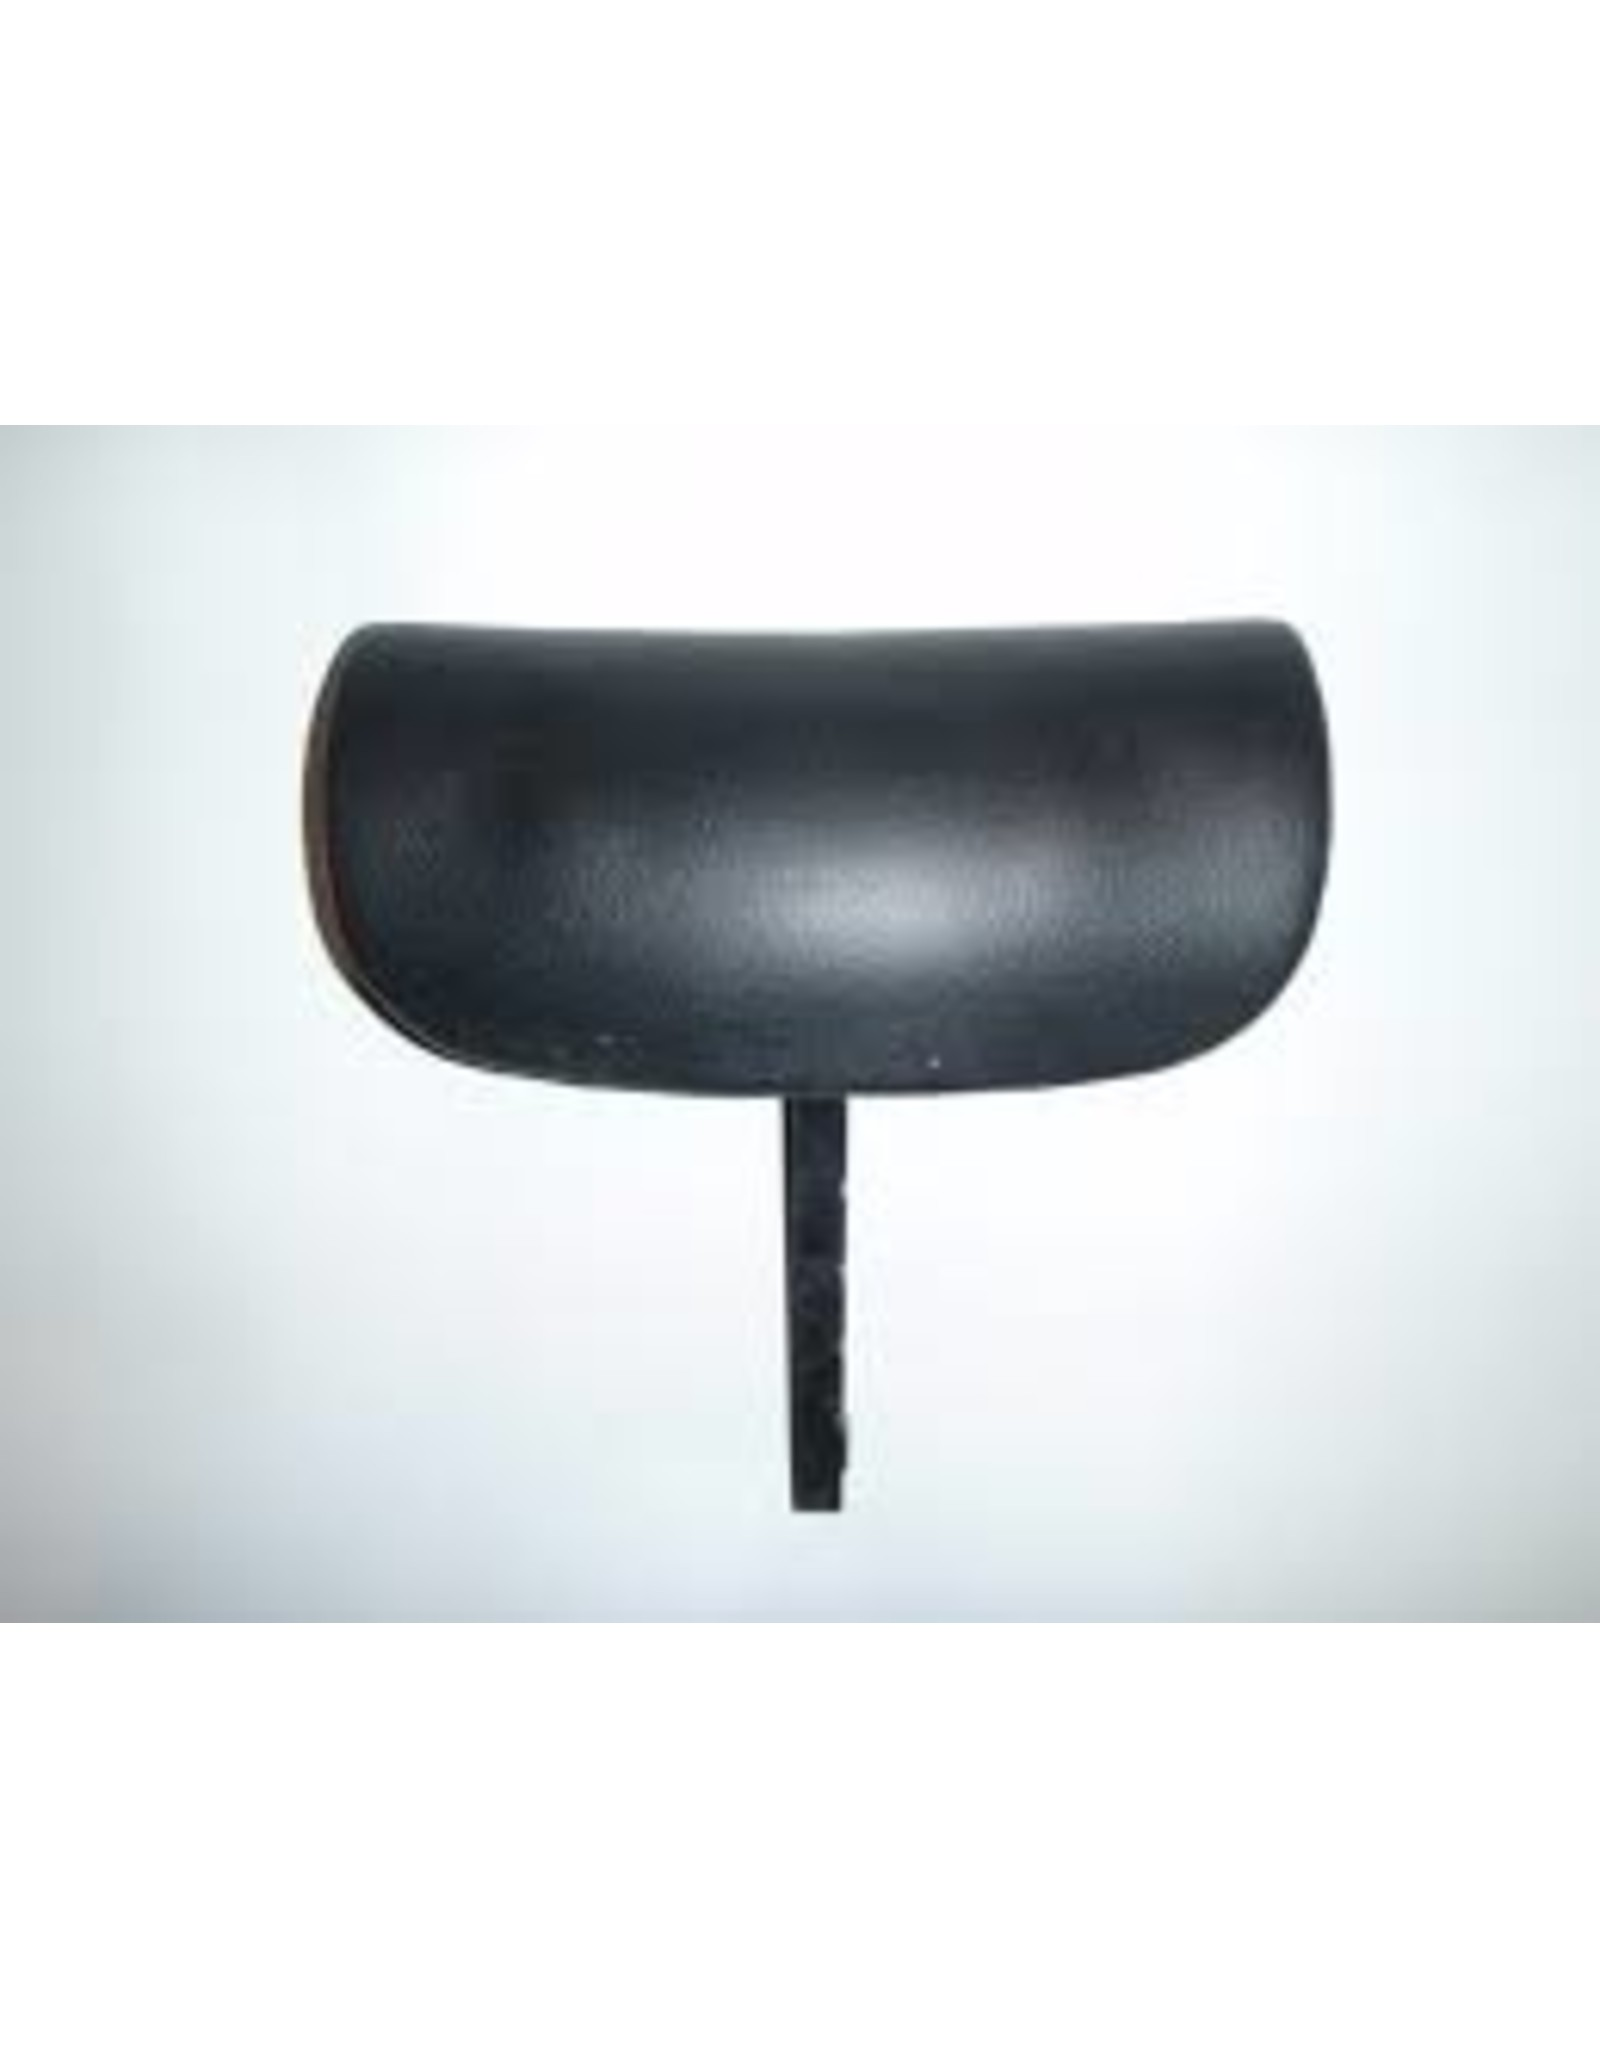 Pillow Adjustable Black with mounting post